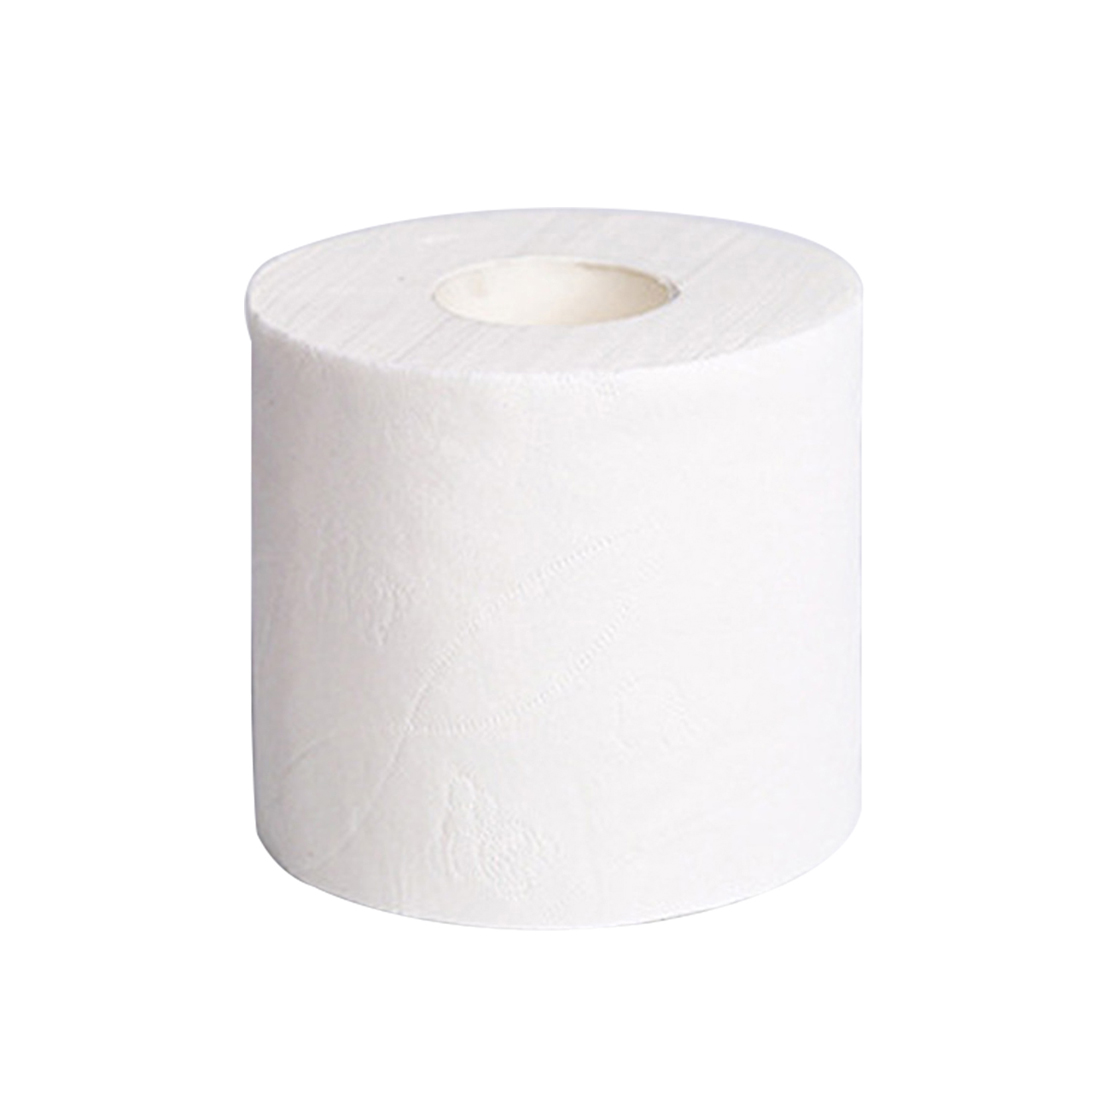 3ply White Toilet Tissue Hollow Replacement Roll Paper Clean Soft Toilet Paper Prevent Flu Cleaning Toilet Tissue Z1